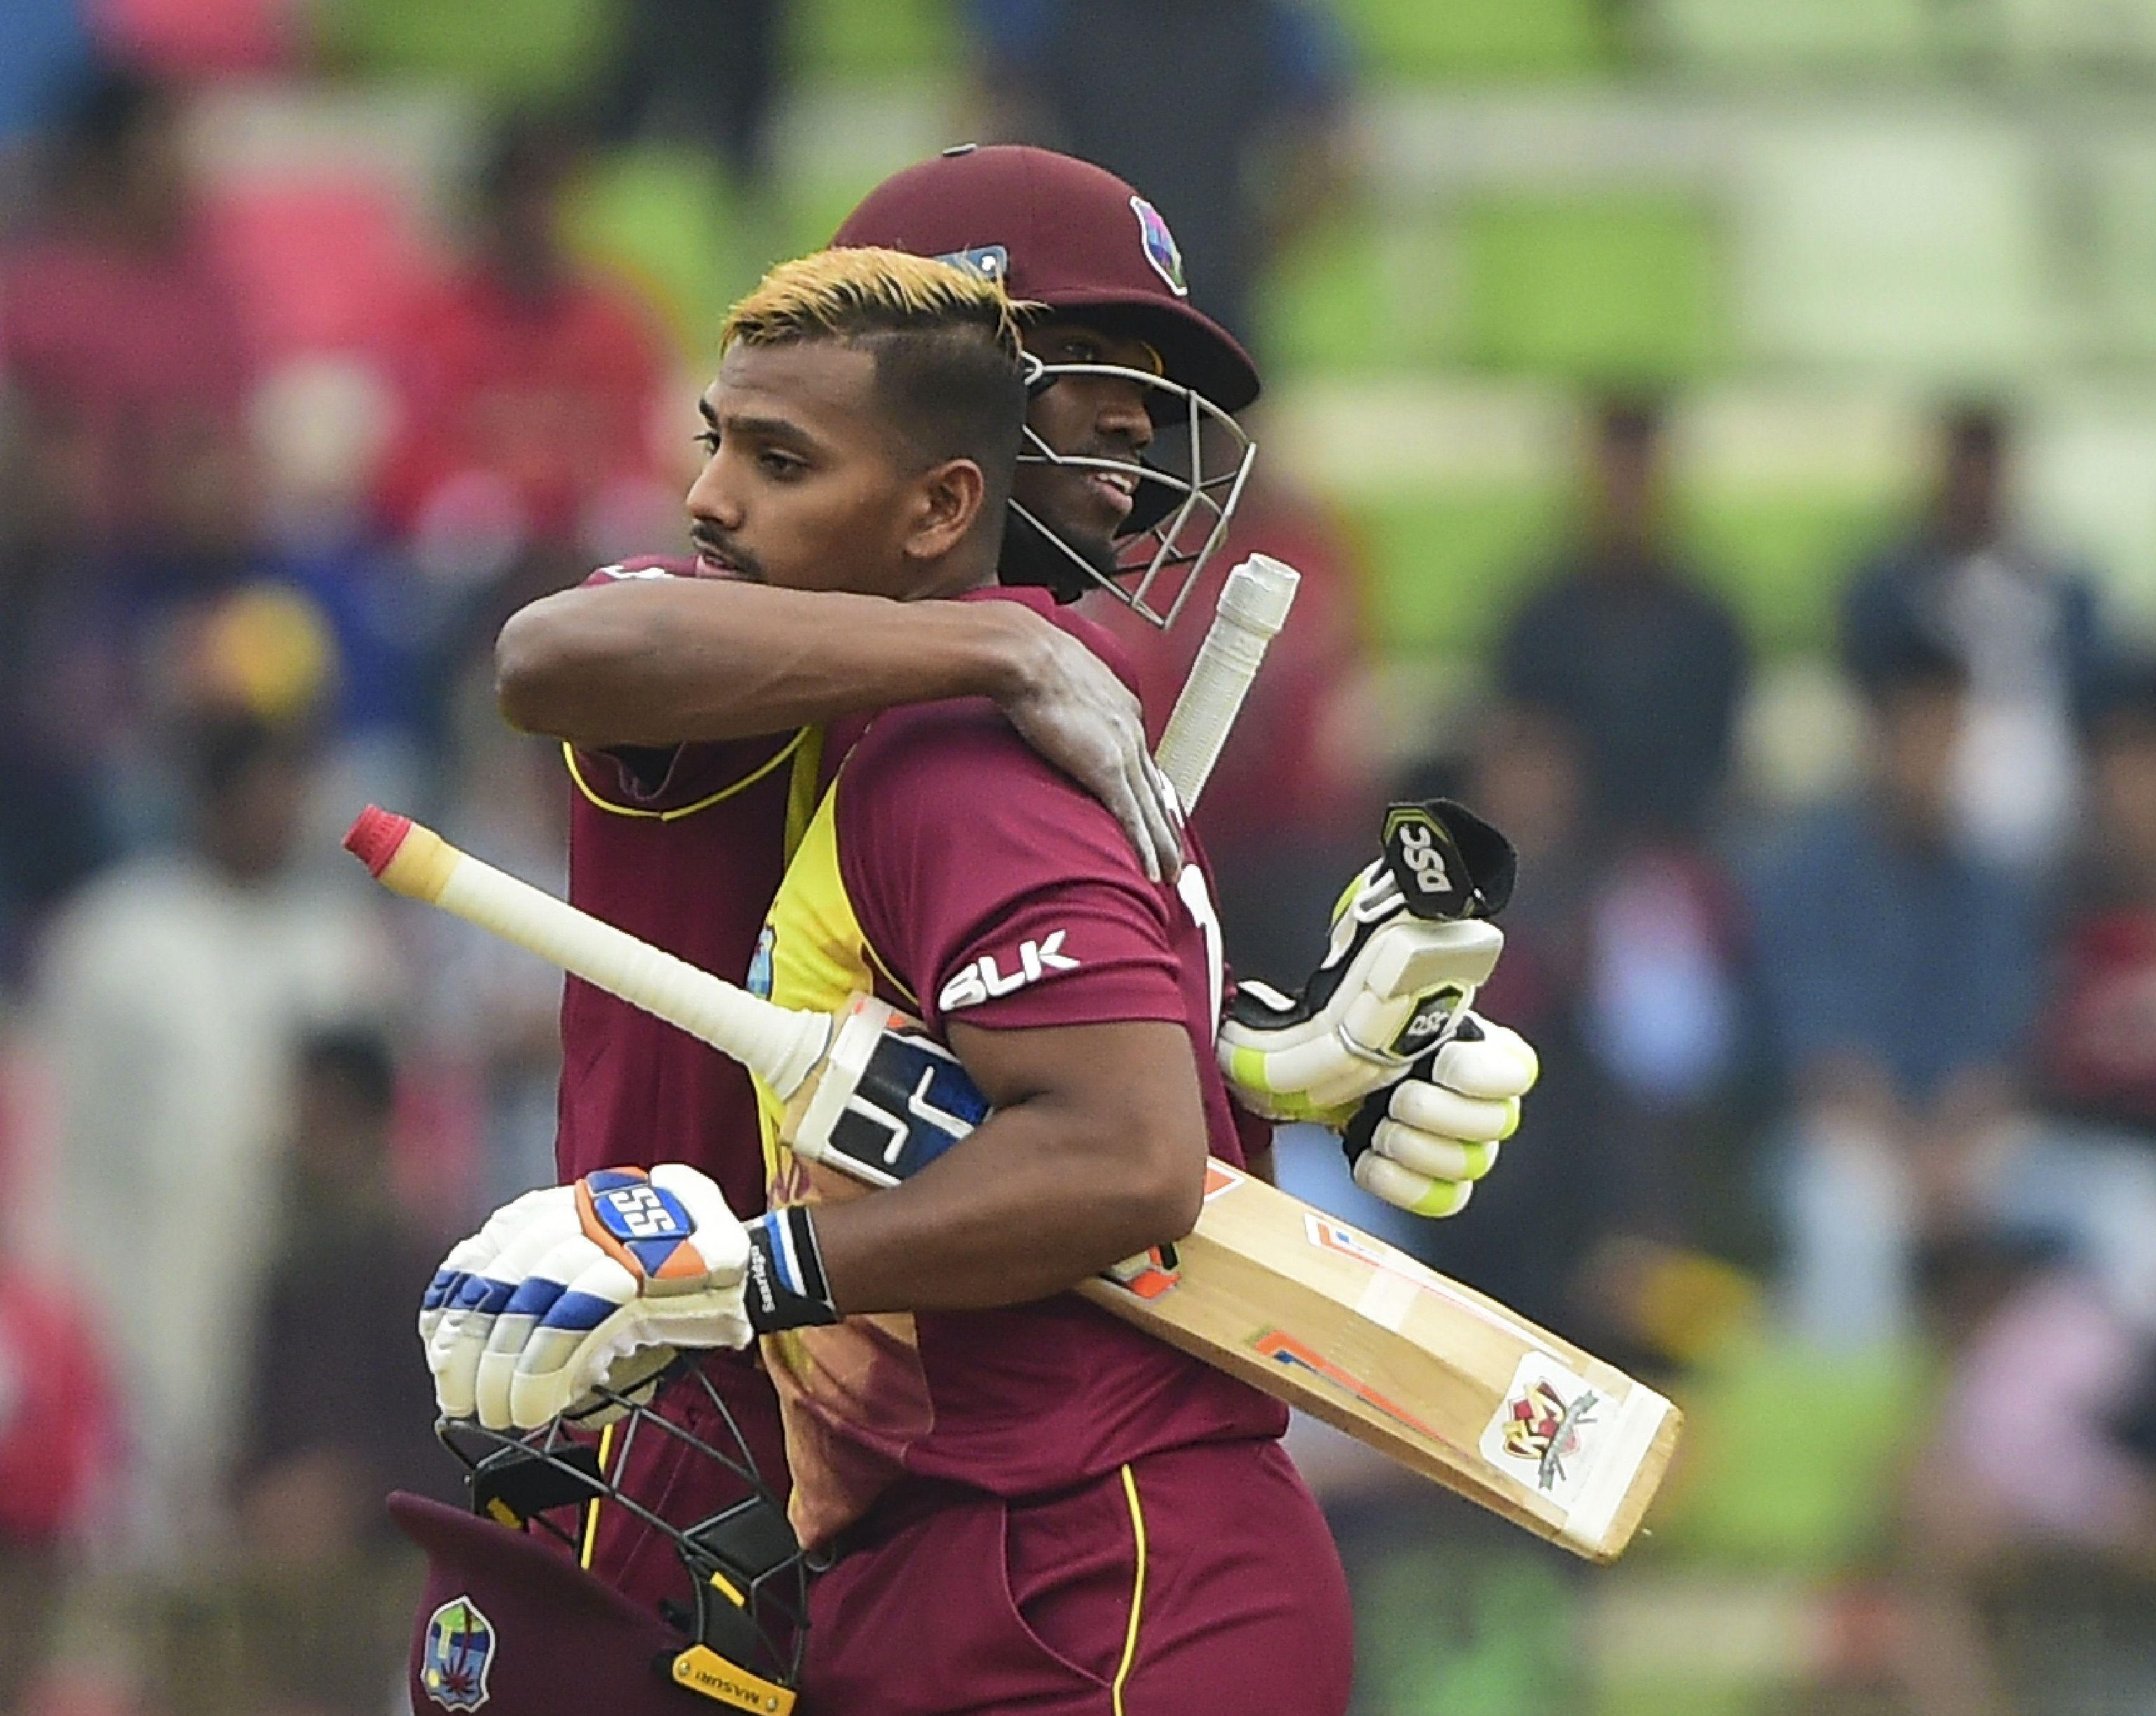 West Indies cricketer Keemo Paul (left) embrace with his teammate Nicholas Pooran (right) after winning the first Twenty20 (T20) cricket match between Bangladesh and West Indies